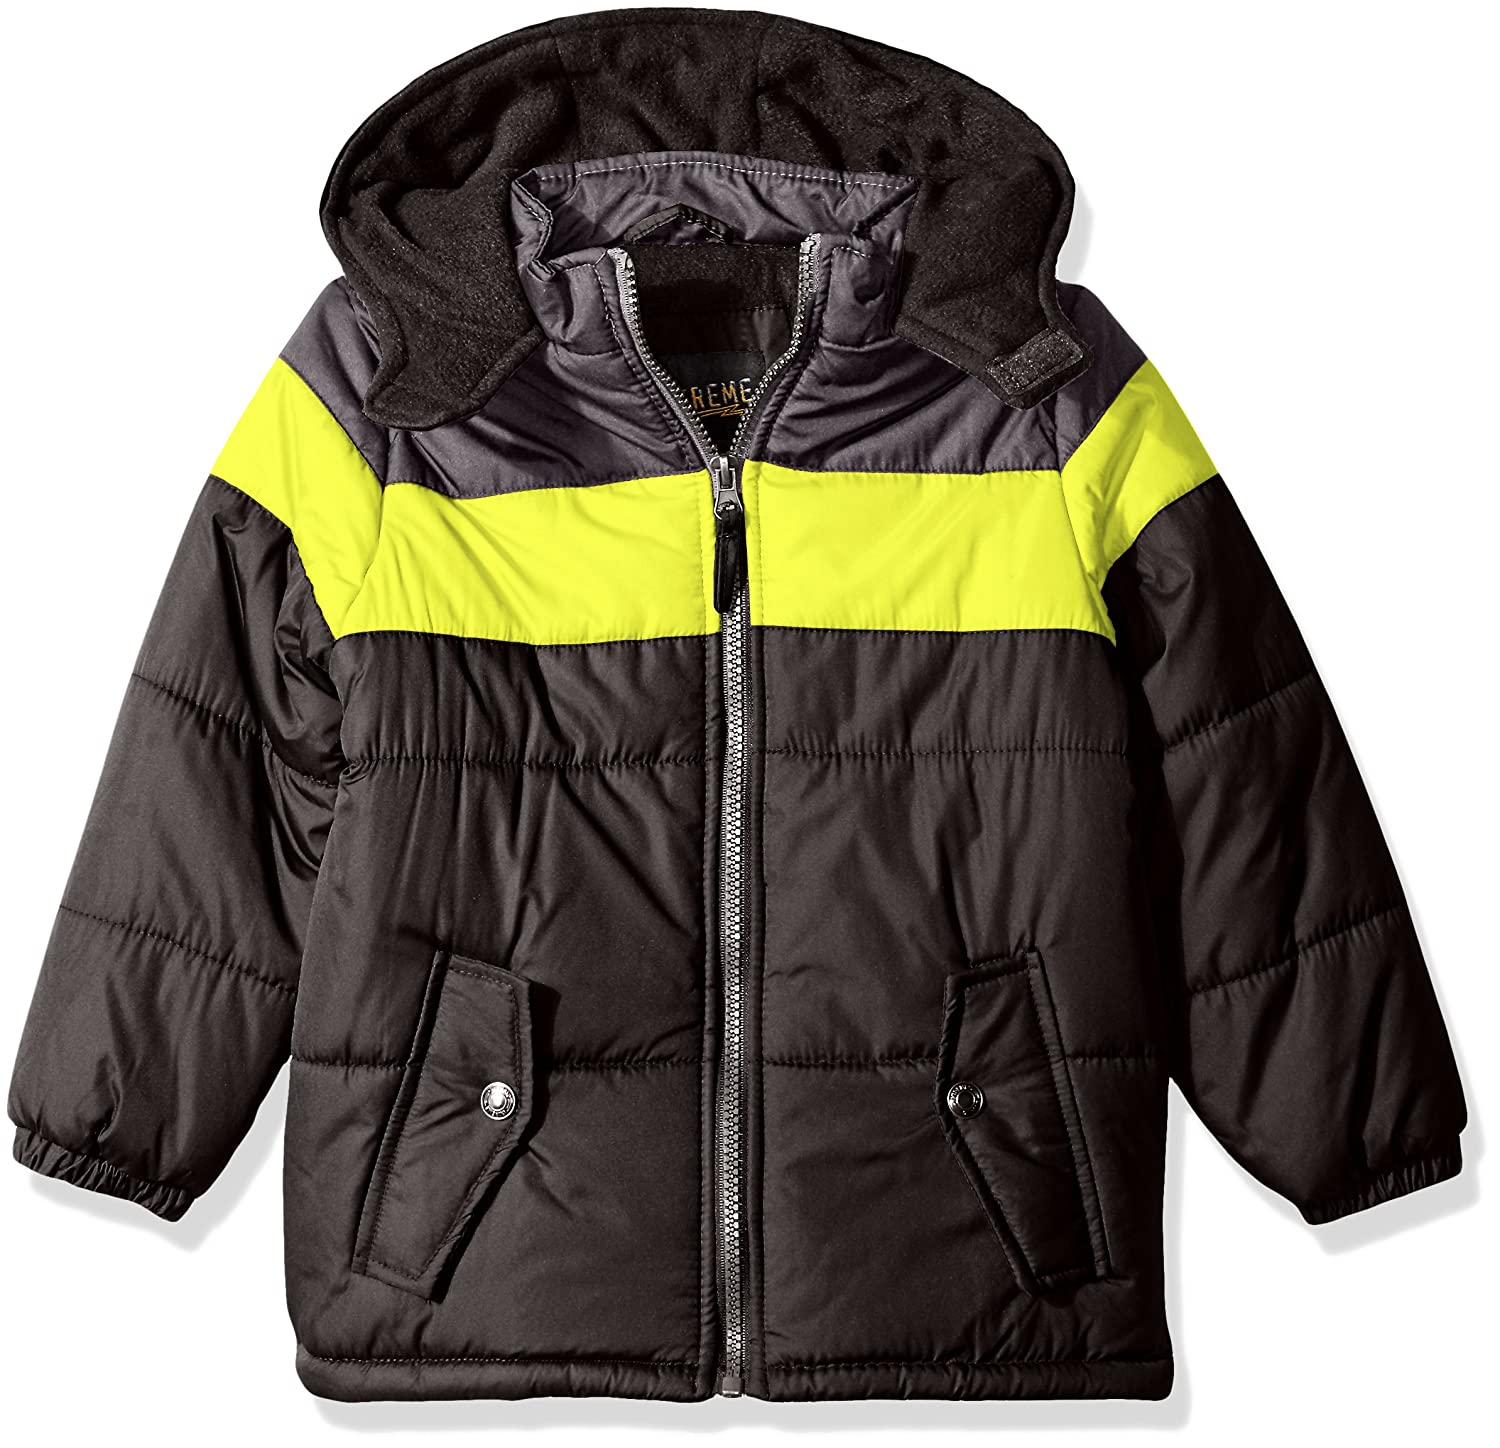 3bee68d8c Amazon.com  iXtreme Boys  Colorblock Gwp Puffer  Clothing